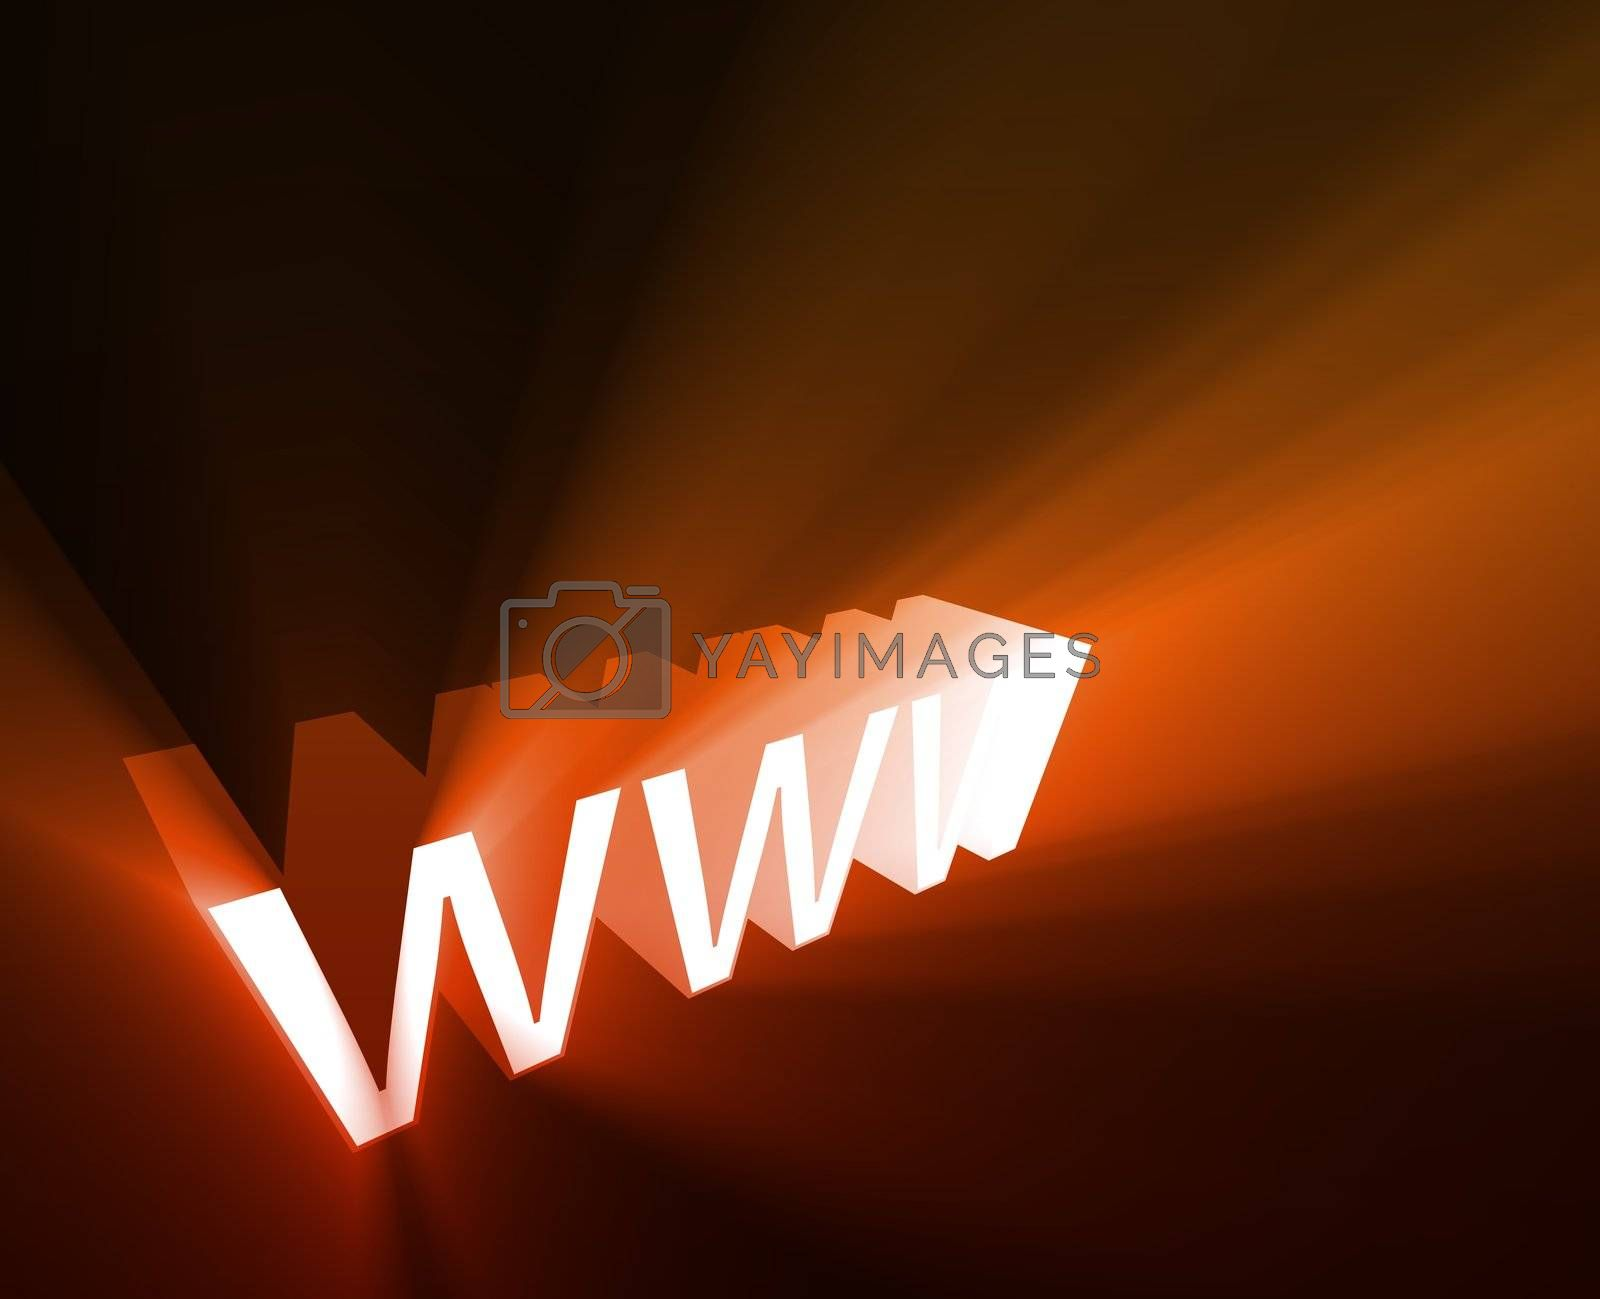 WWW internet word graphic, with glowing light effects